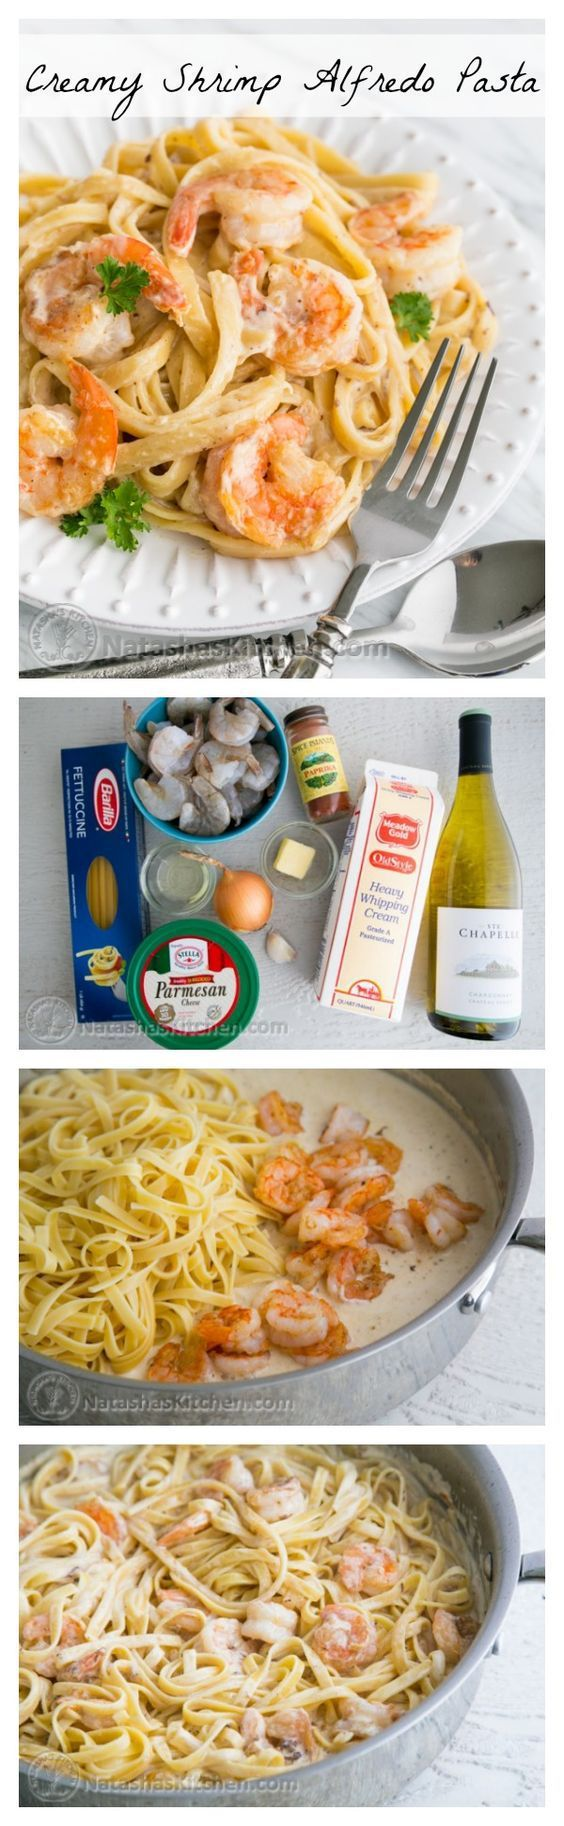 This recipe reminds me of my favorite dish at Olive Garden; seafood alfredo. The creamy pasta studded with large tender shrimp is the ultimate comfort food!